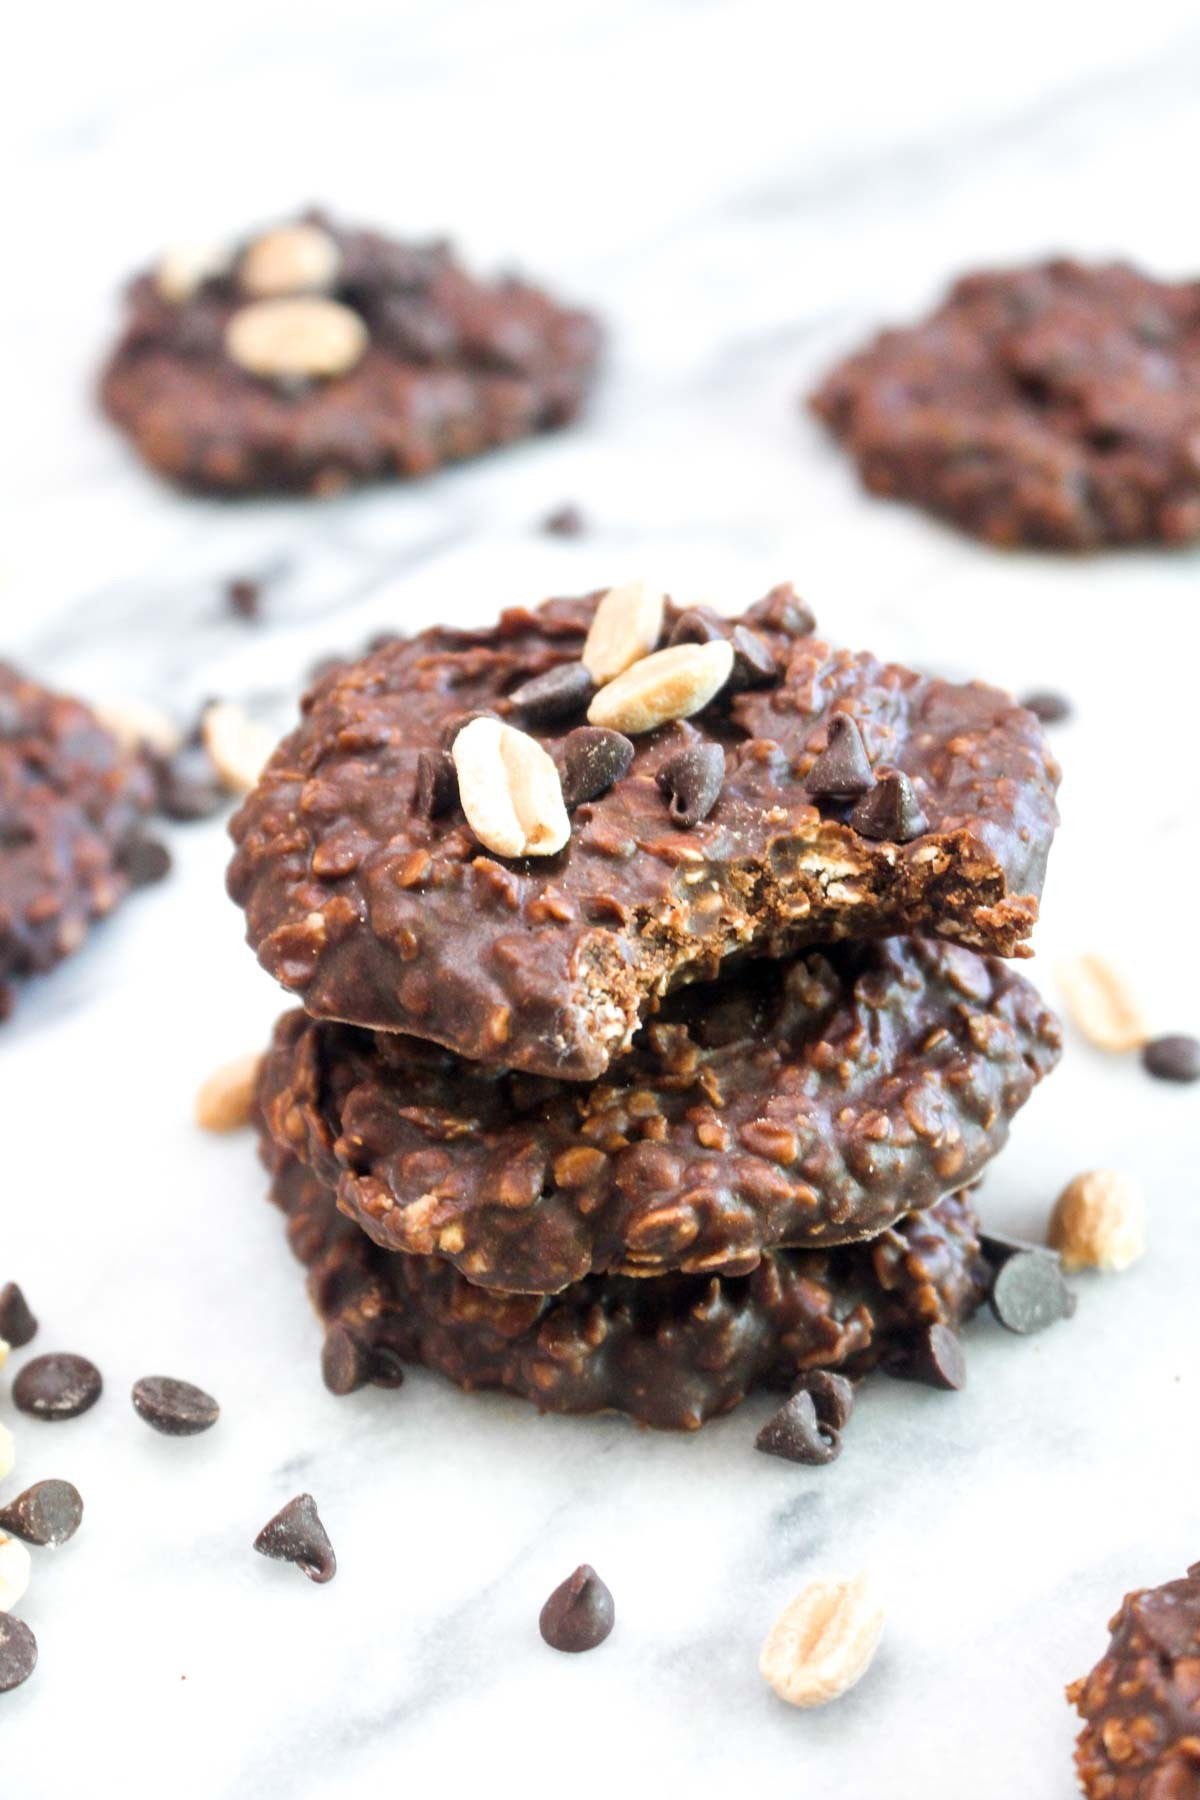 Healthy No Bake Cookies Without Peanut Butter  Healthy Chocolate Peanut Butter No Bake Cookies Catching